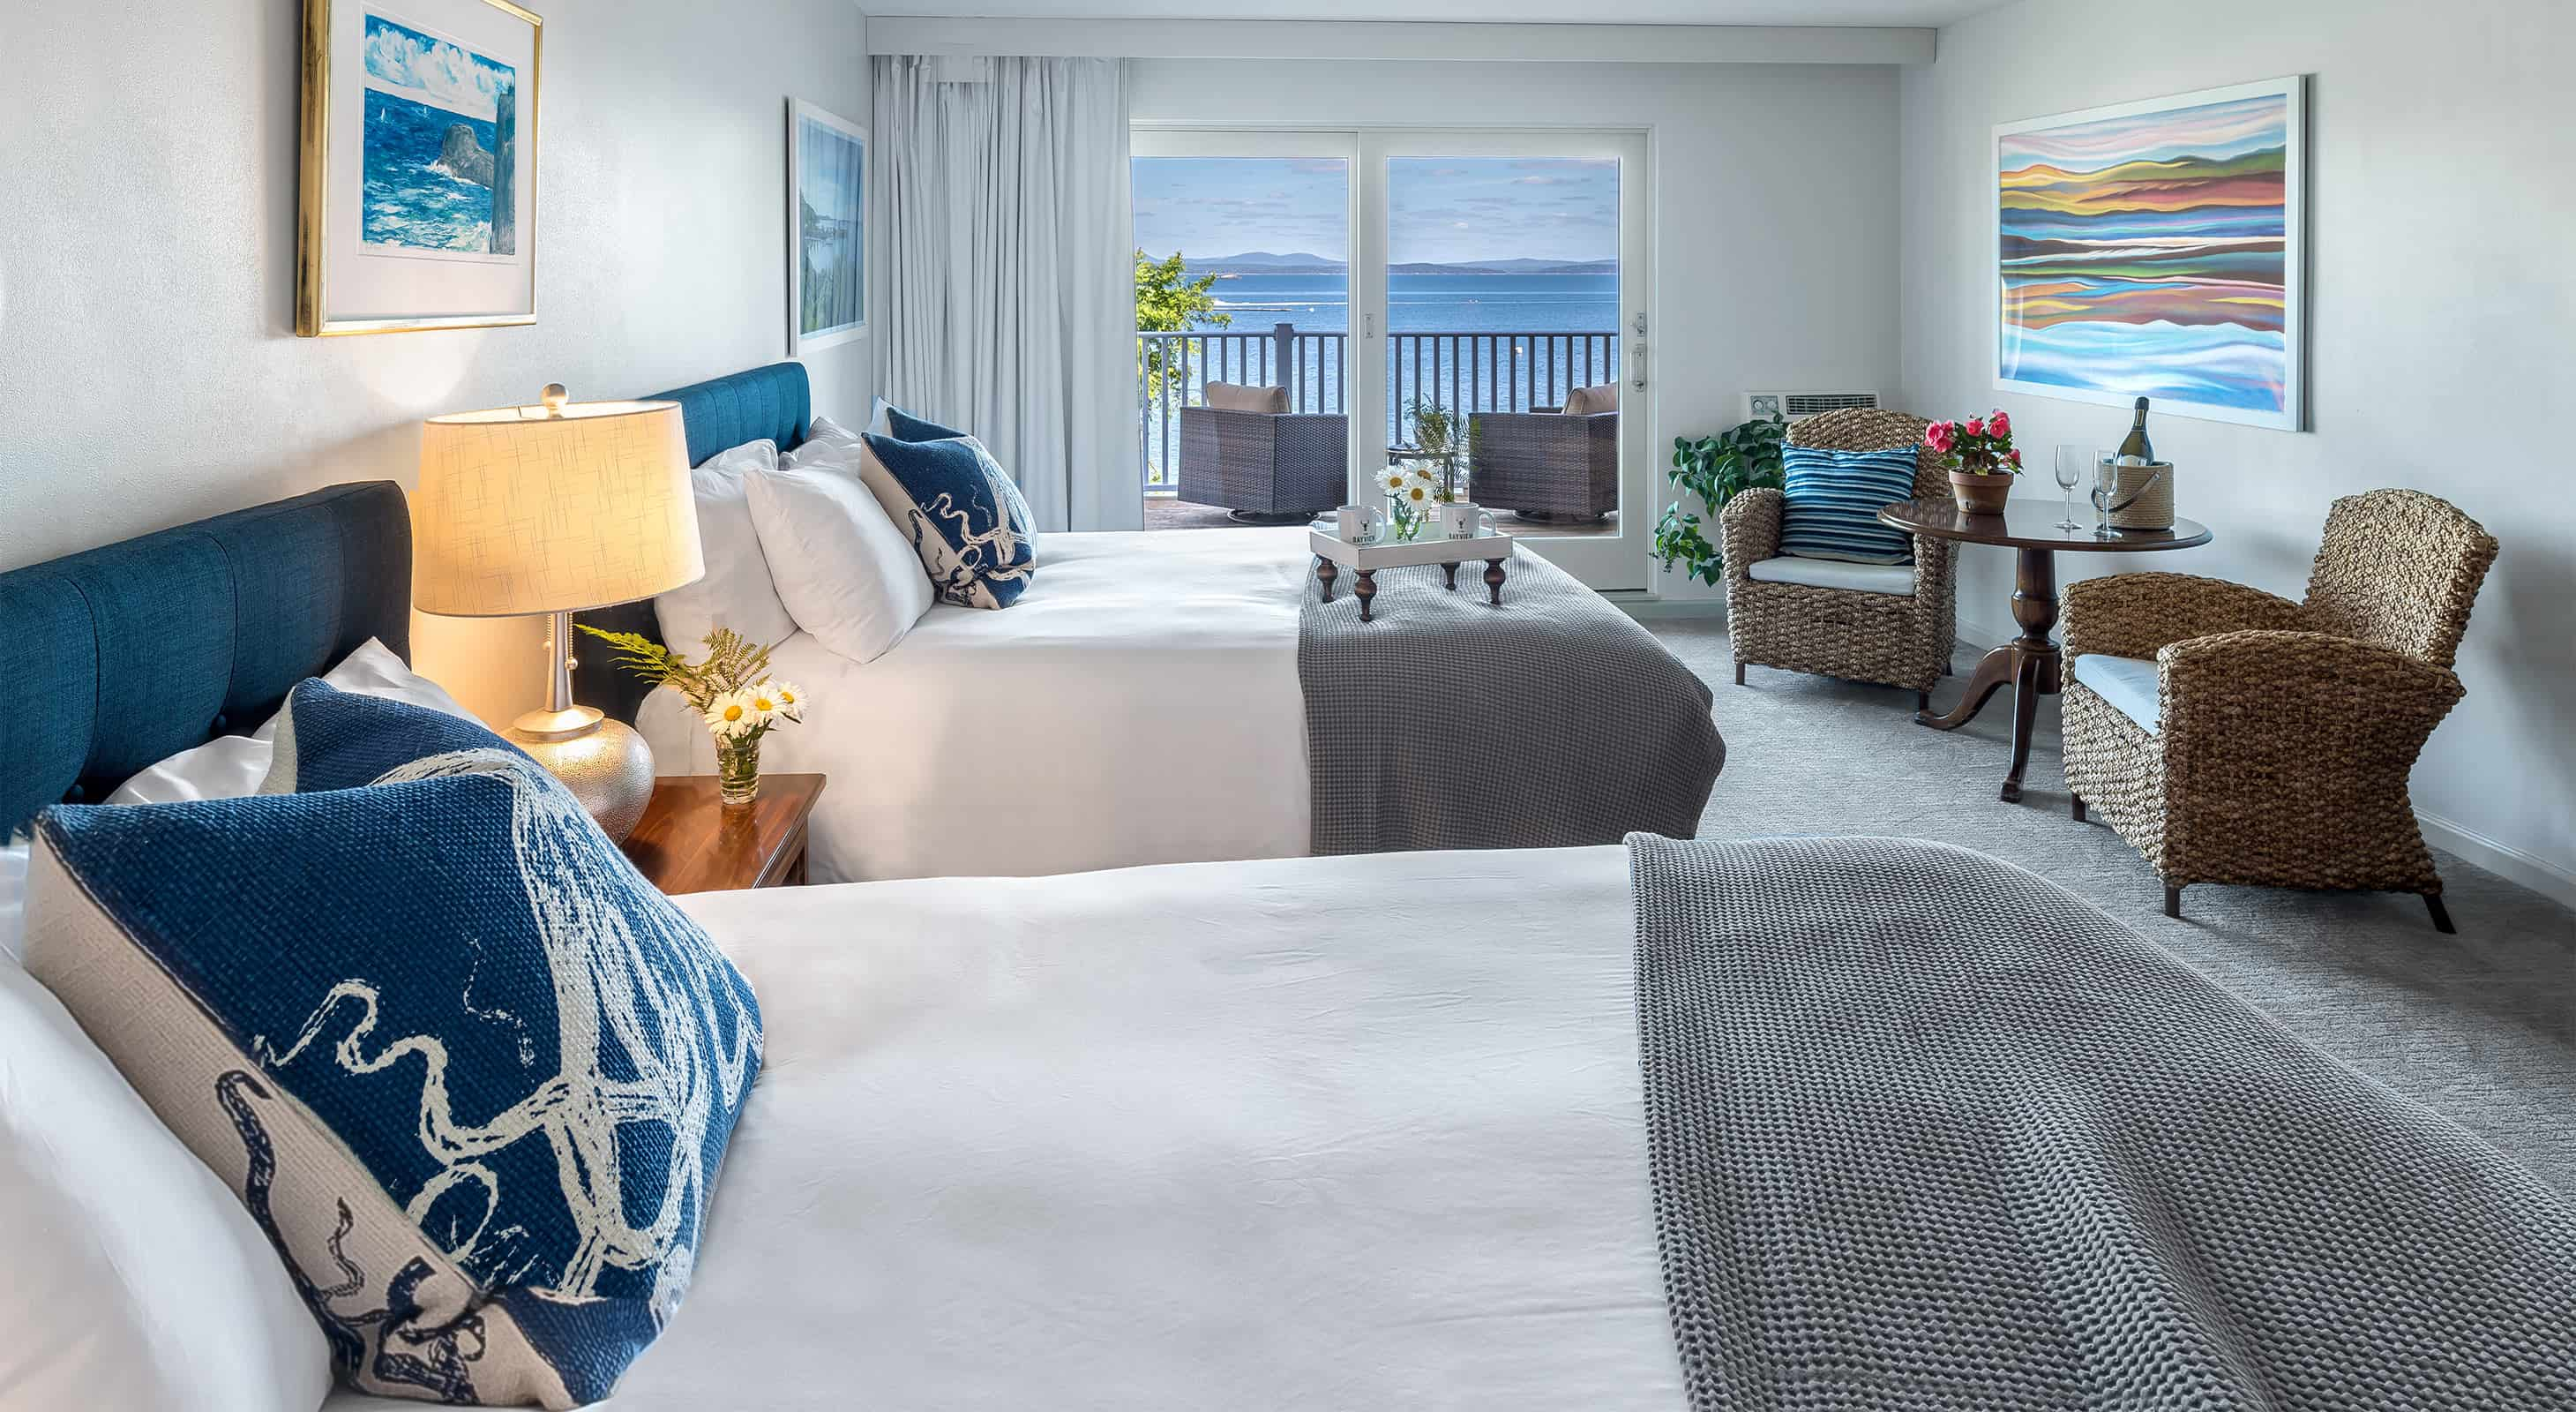 Two Queen Beds with ocean view and seating area